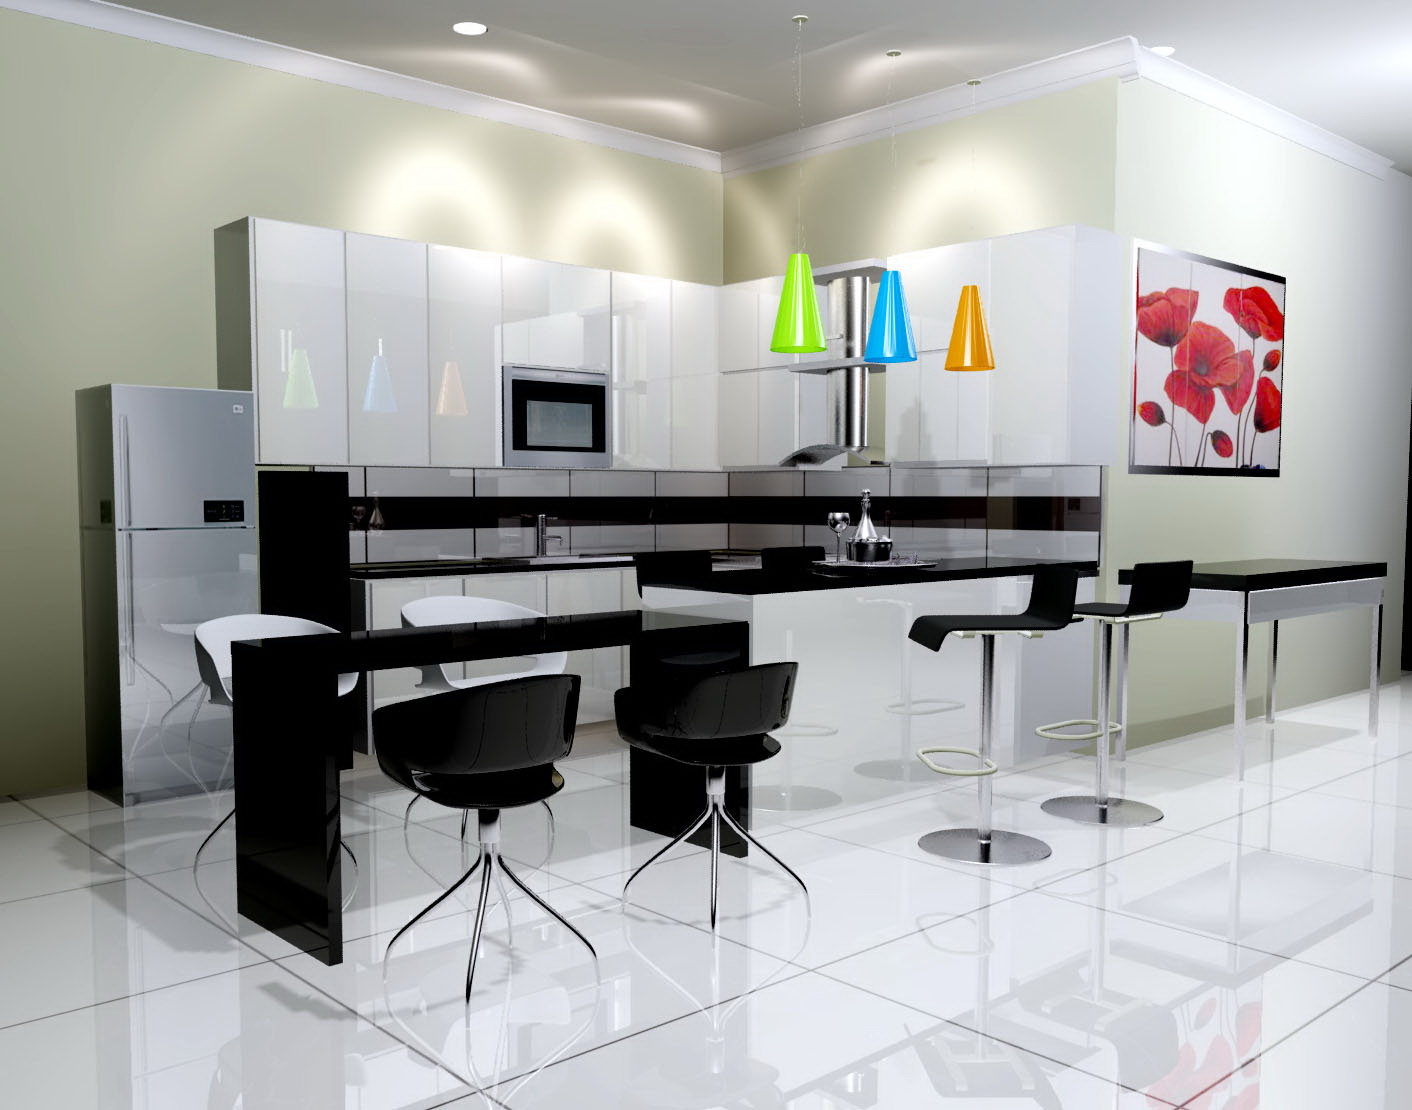 Idesign arsitektur pantry hitam putih for Kitchen set hitam